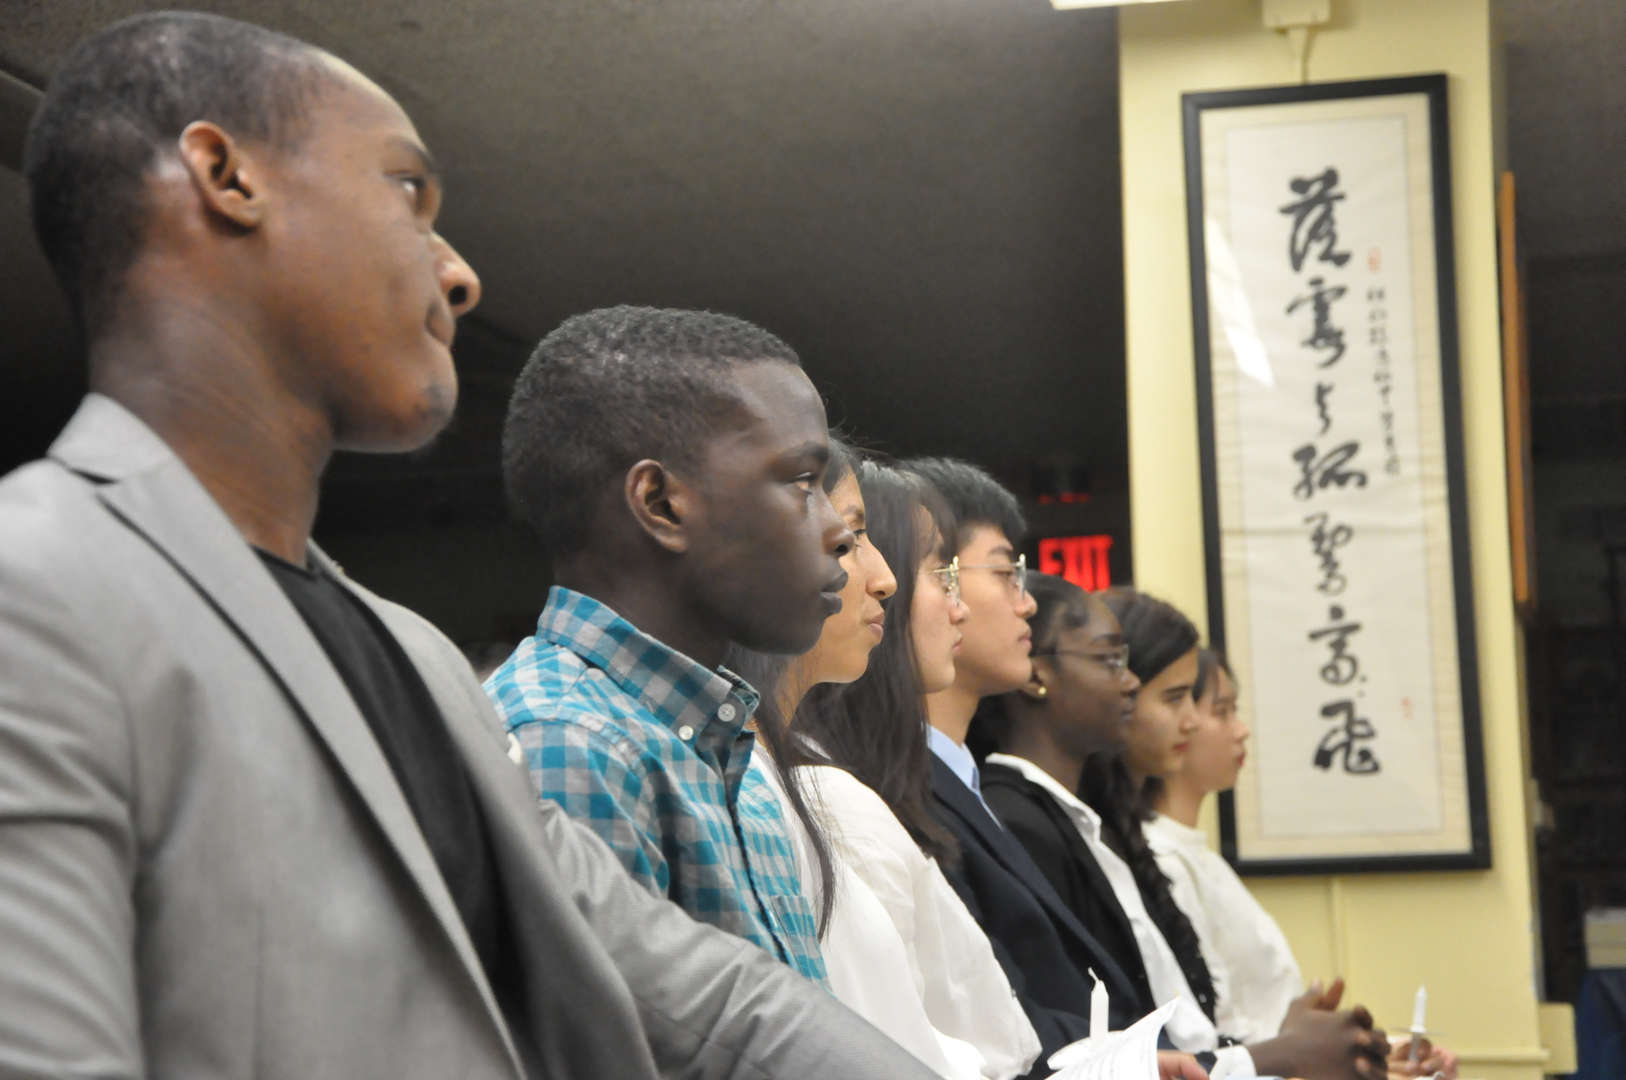 Students listening intently